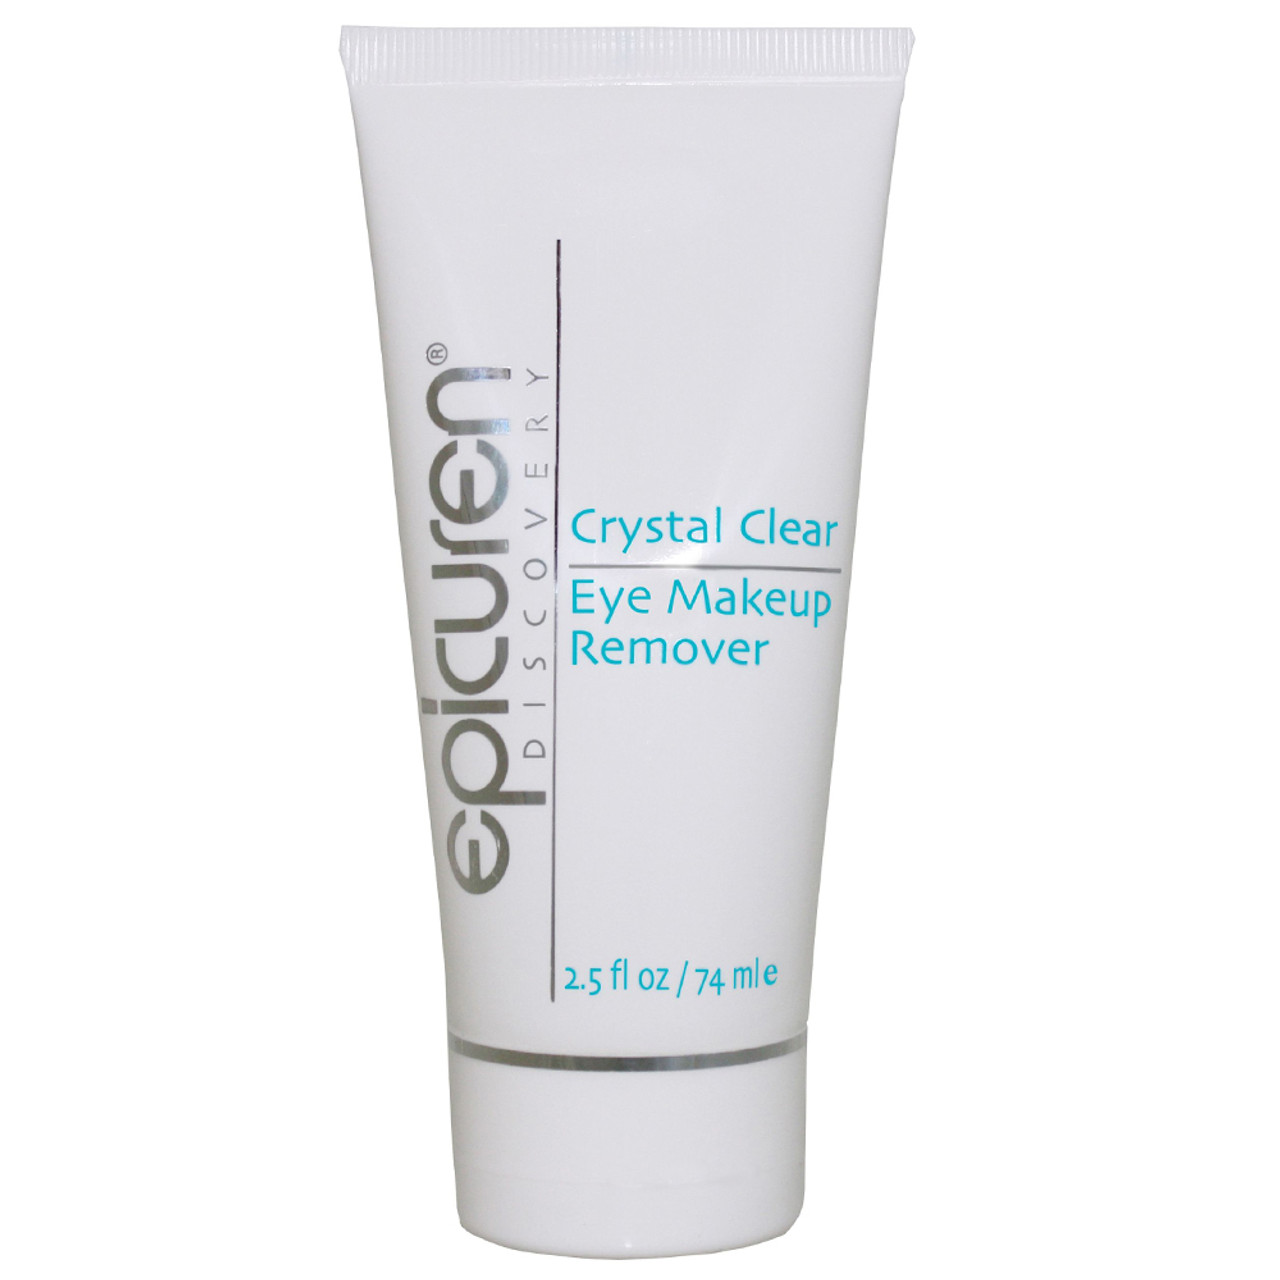 epicuren Discovery Crystal Clear Eye Makeup Remover